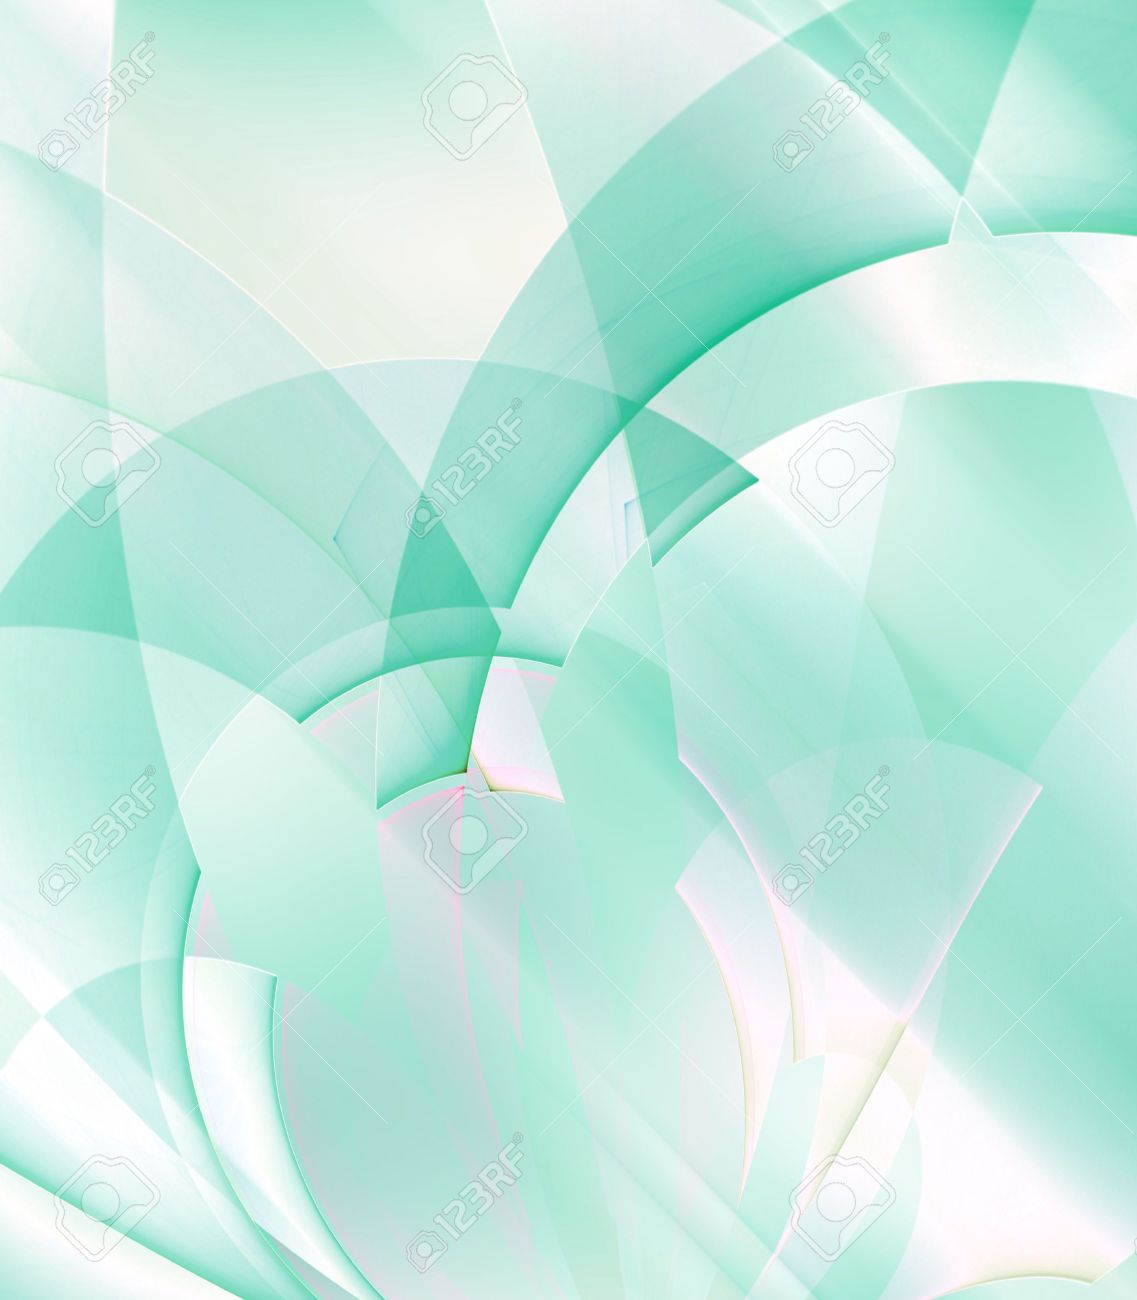 layered curves and arch patterns in mint green color fractal